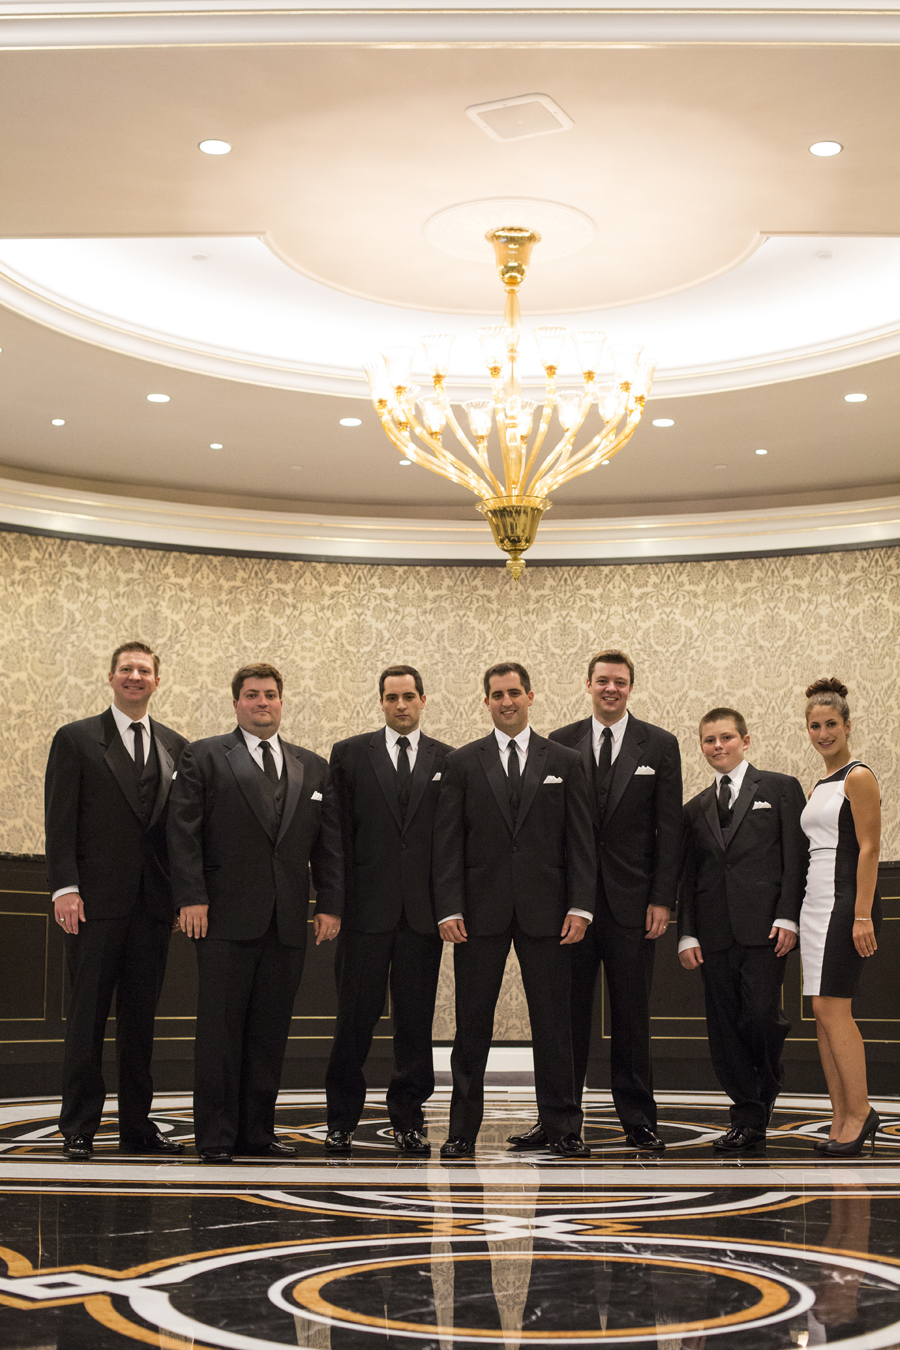 portrait of groom and groomsmen in new york palace hotel lobby